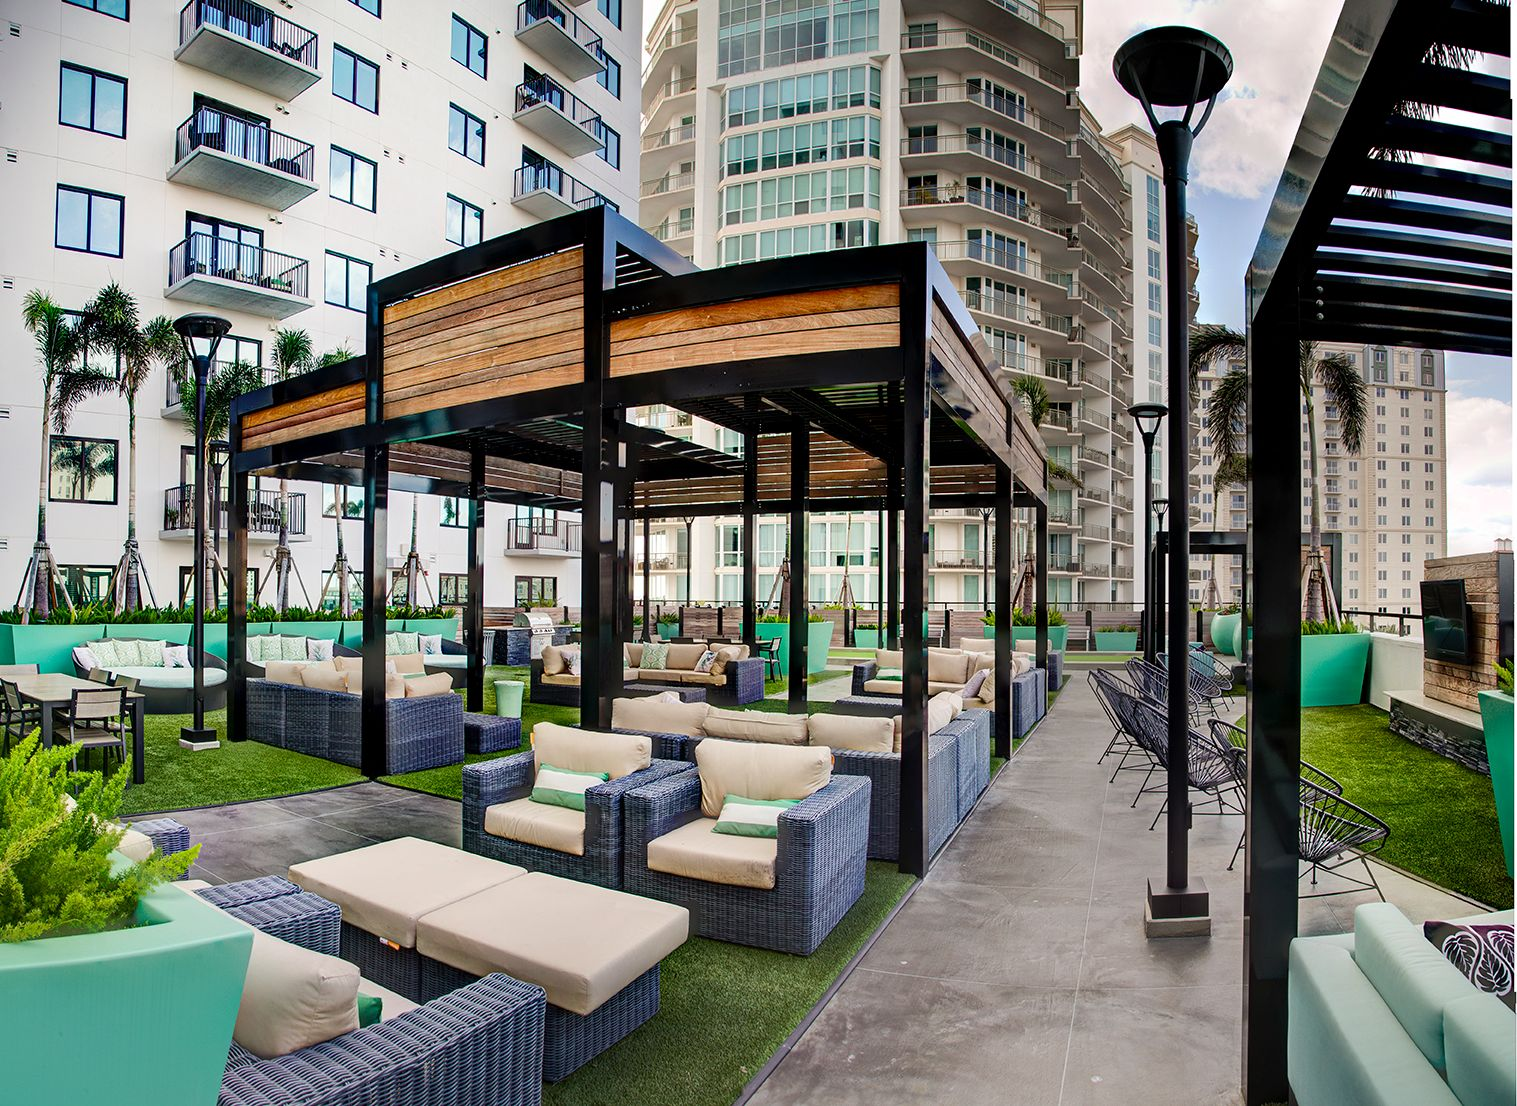 Rooftop amenity area with outdoor seating